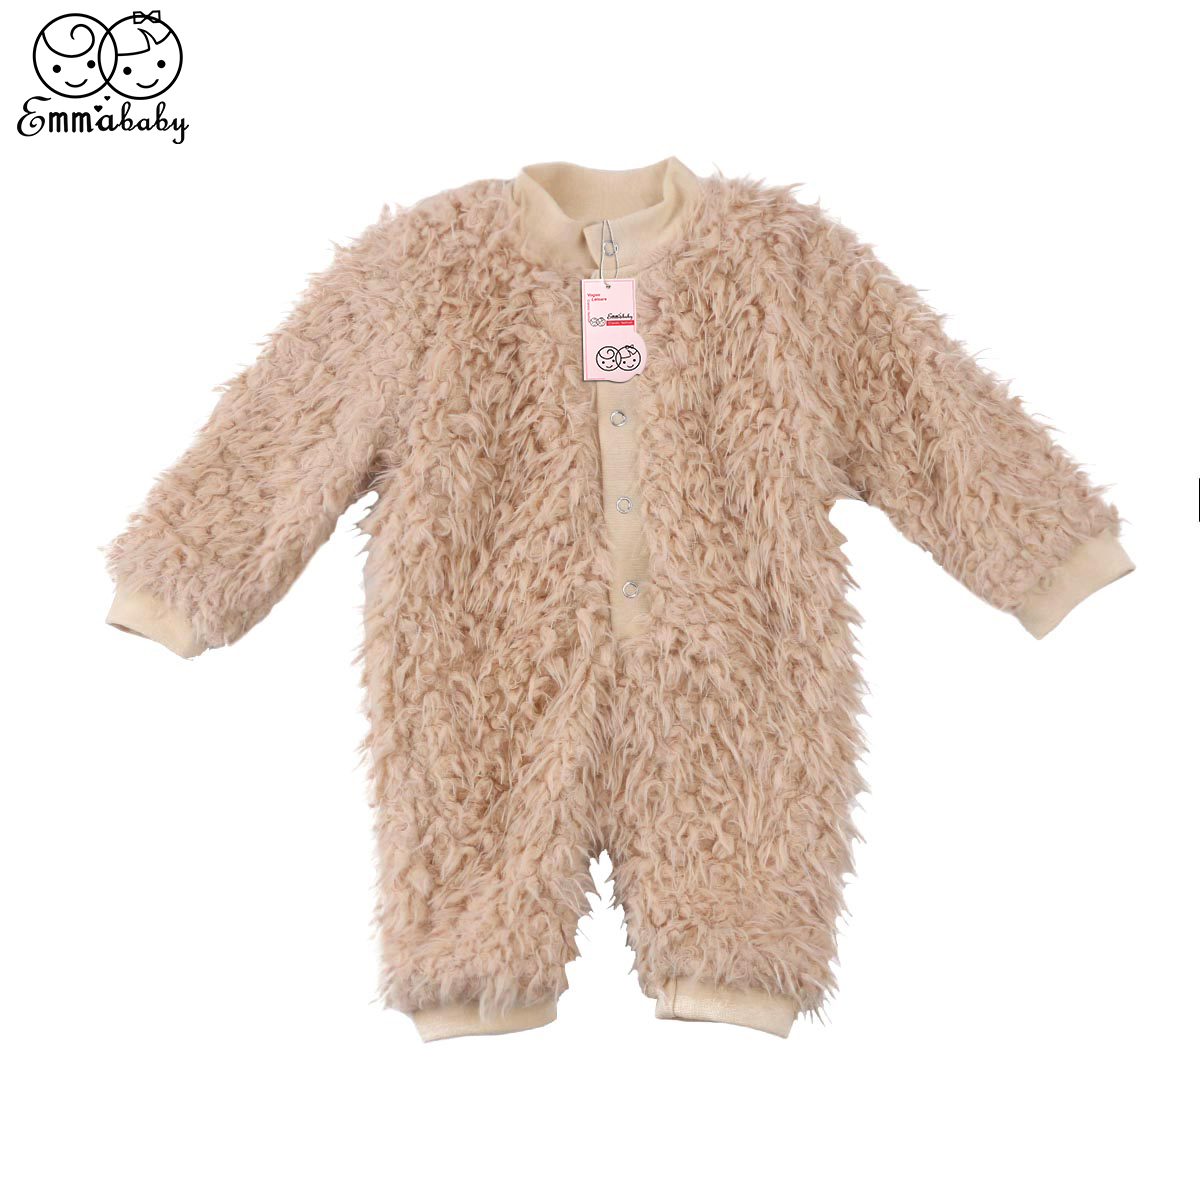 2018 new arrival winter warm fleece Rompers Newborn Baby Boy Girl Clothes long sleeve thicken Romper Jumpsuit One Pieces Outfits 2016 fashion baby boy girl romper clothes autumn winter warm bebes playsuit zipper long sleeve jumpsuit one pieces outfits suit